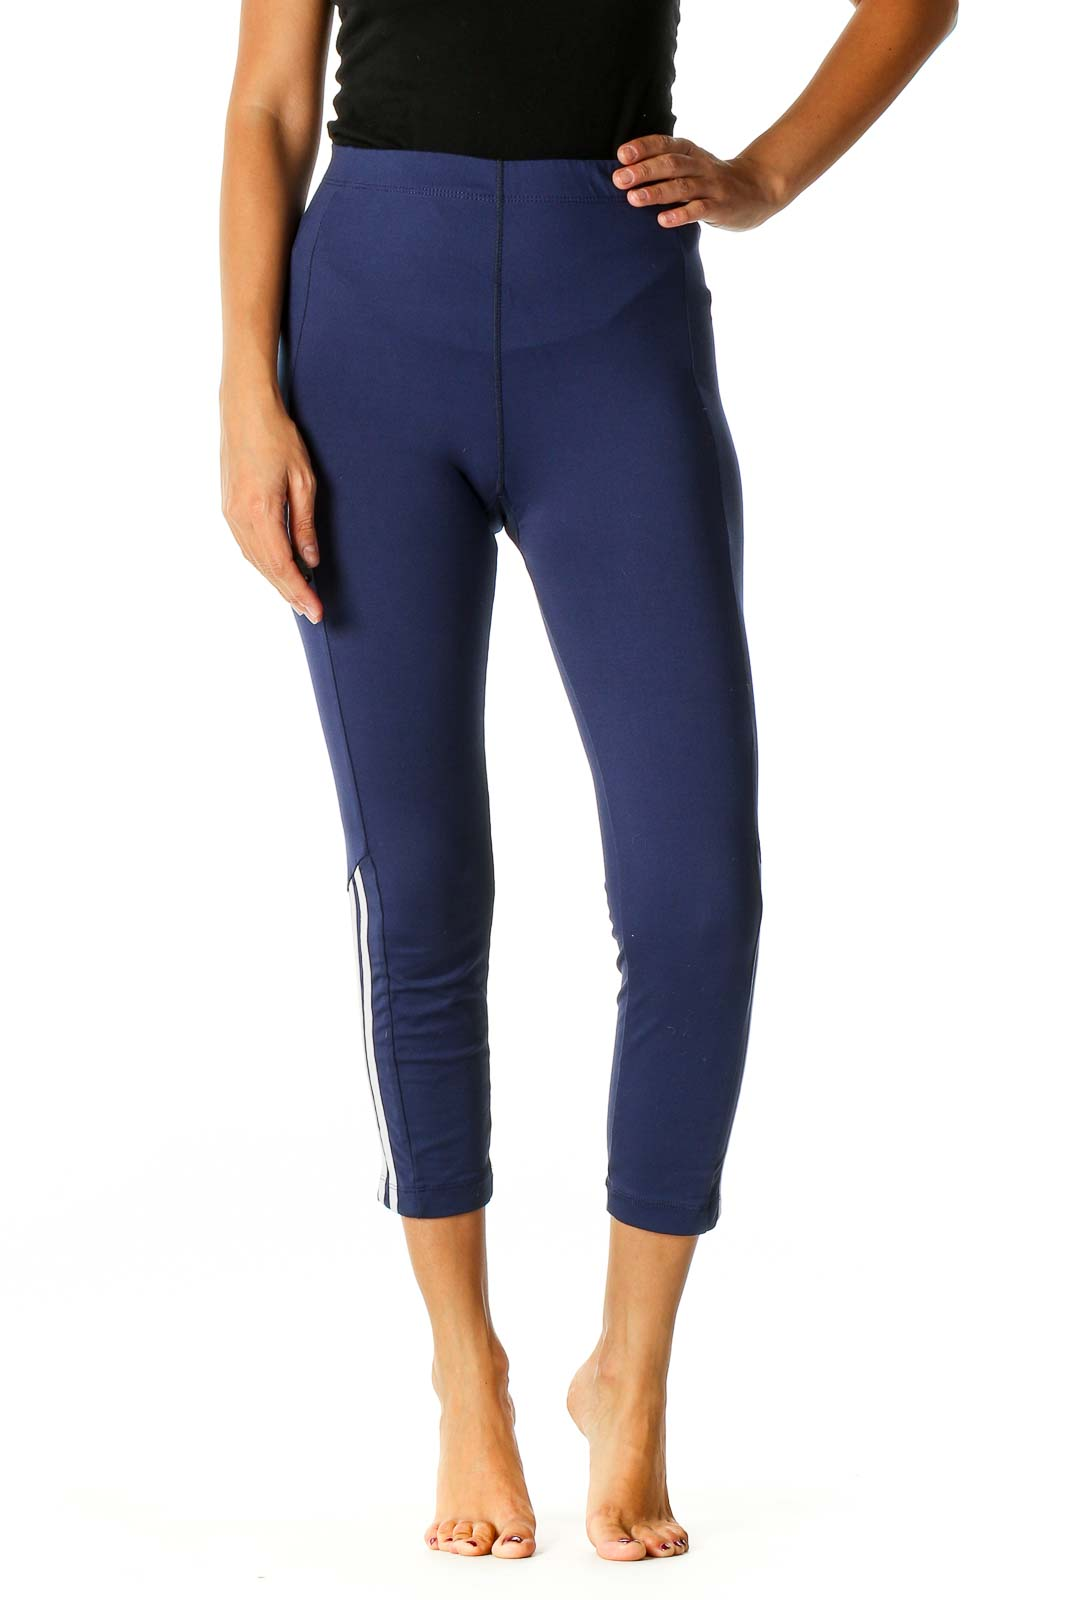 Blue Solid Activewear Leggings Front